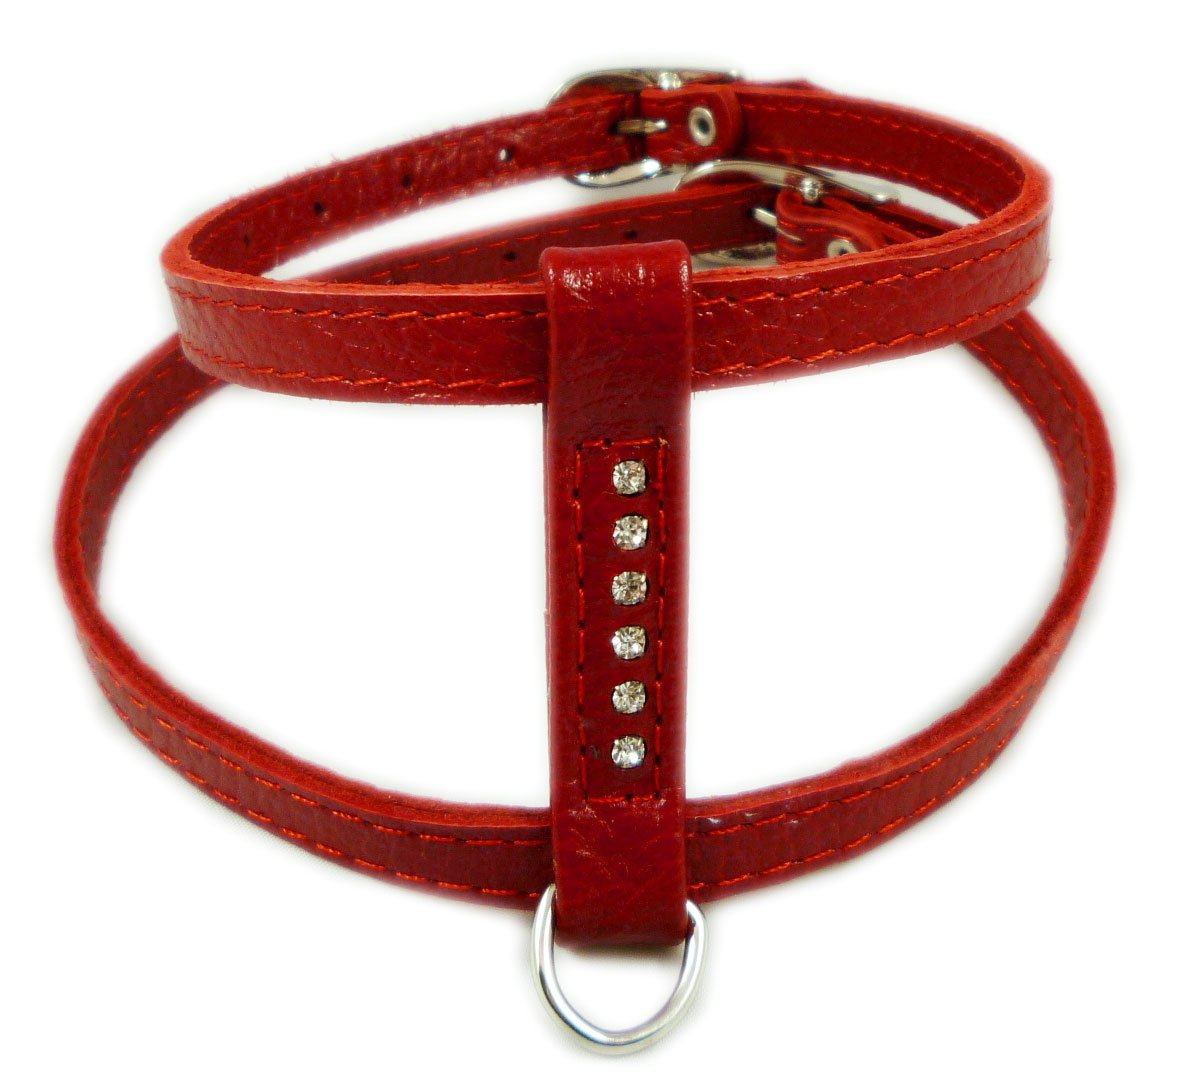 Genuine Leather Dog Harness for Toy Breeds X-small. 10 -13  Chest Circumference Rhinestones (Red)